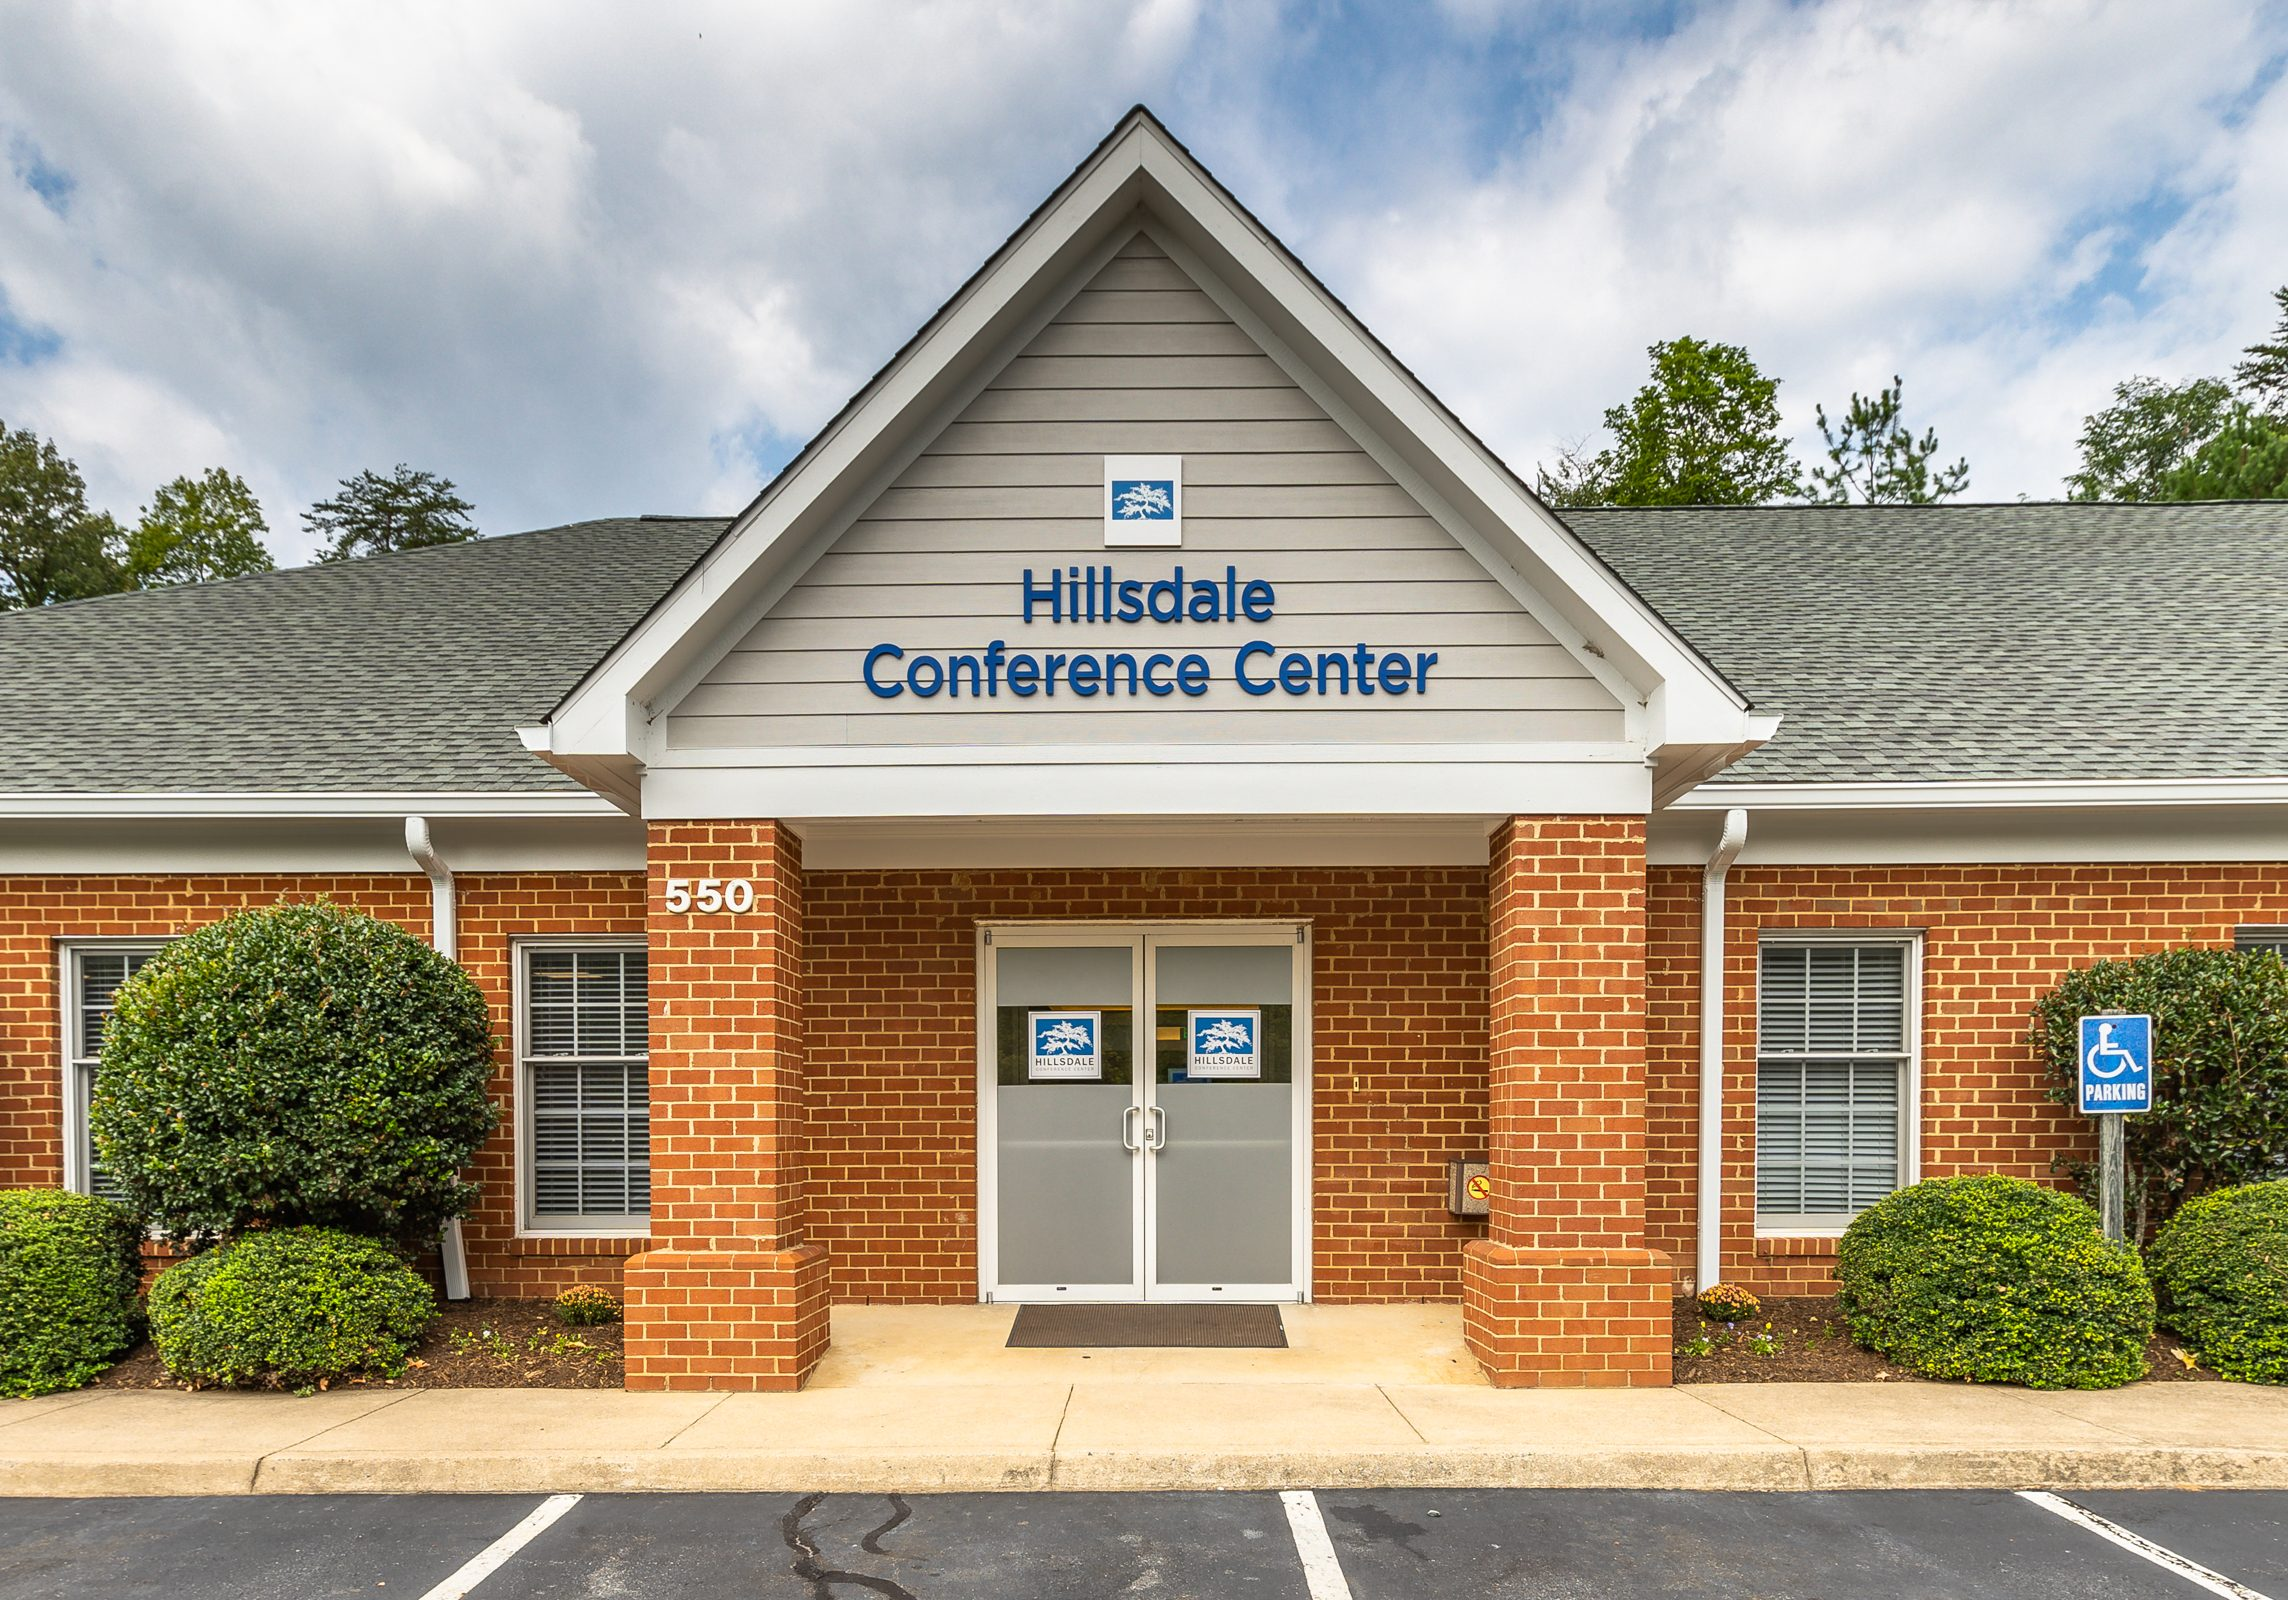 hillsdale-conference-center